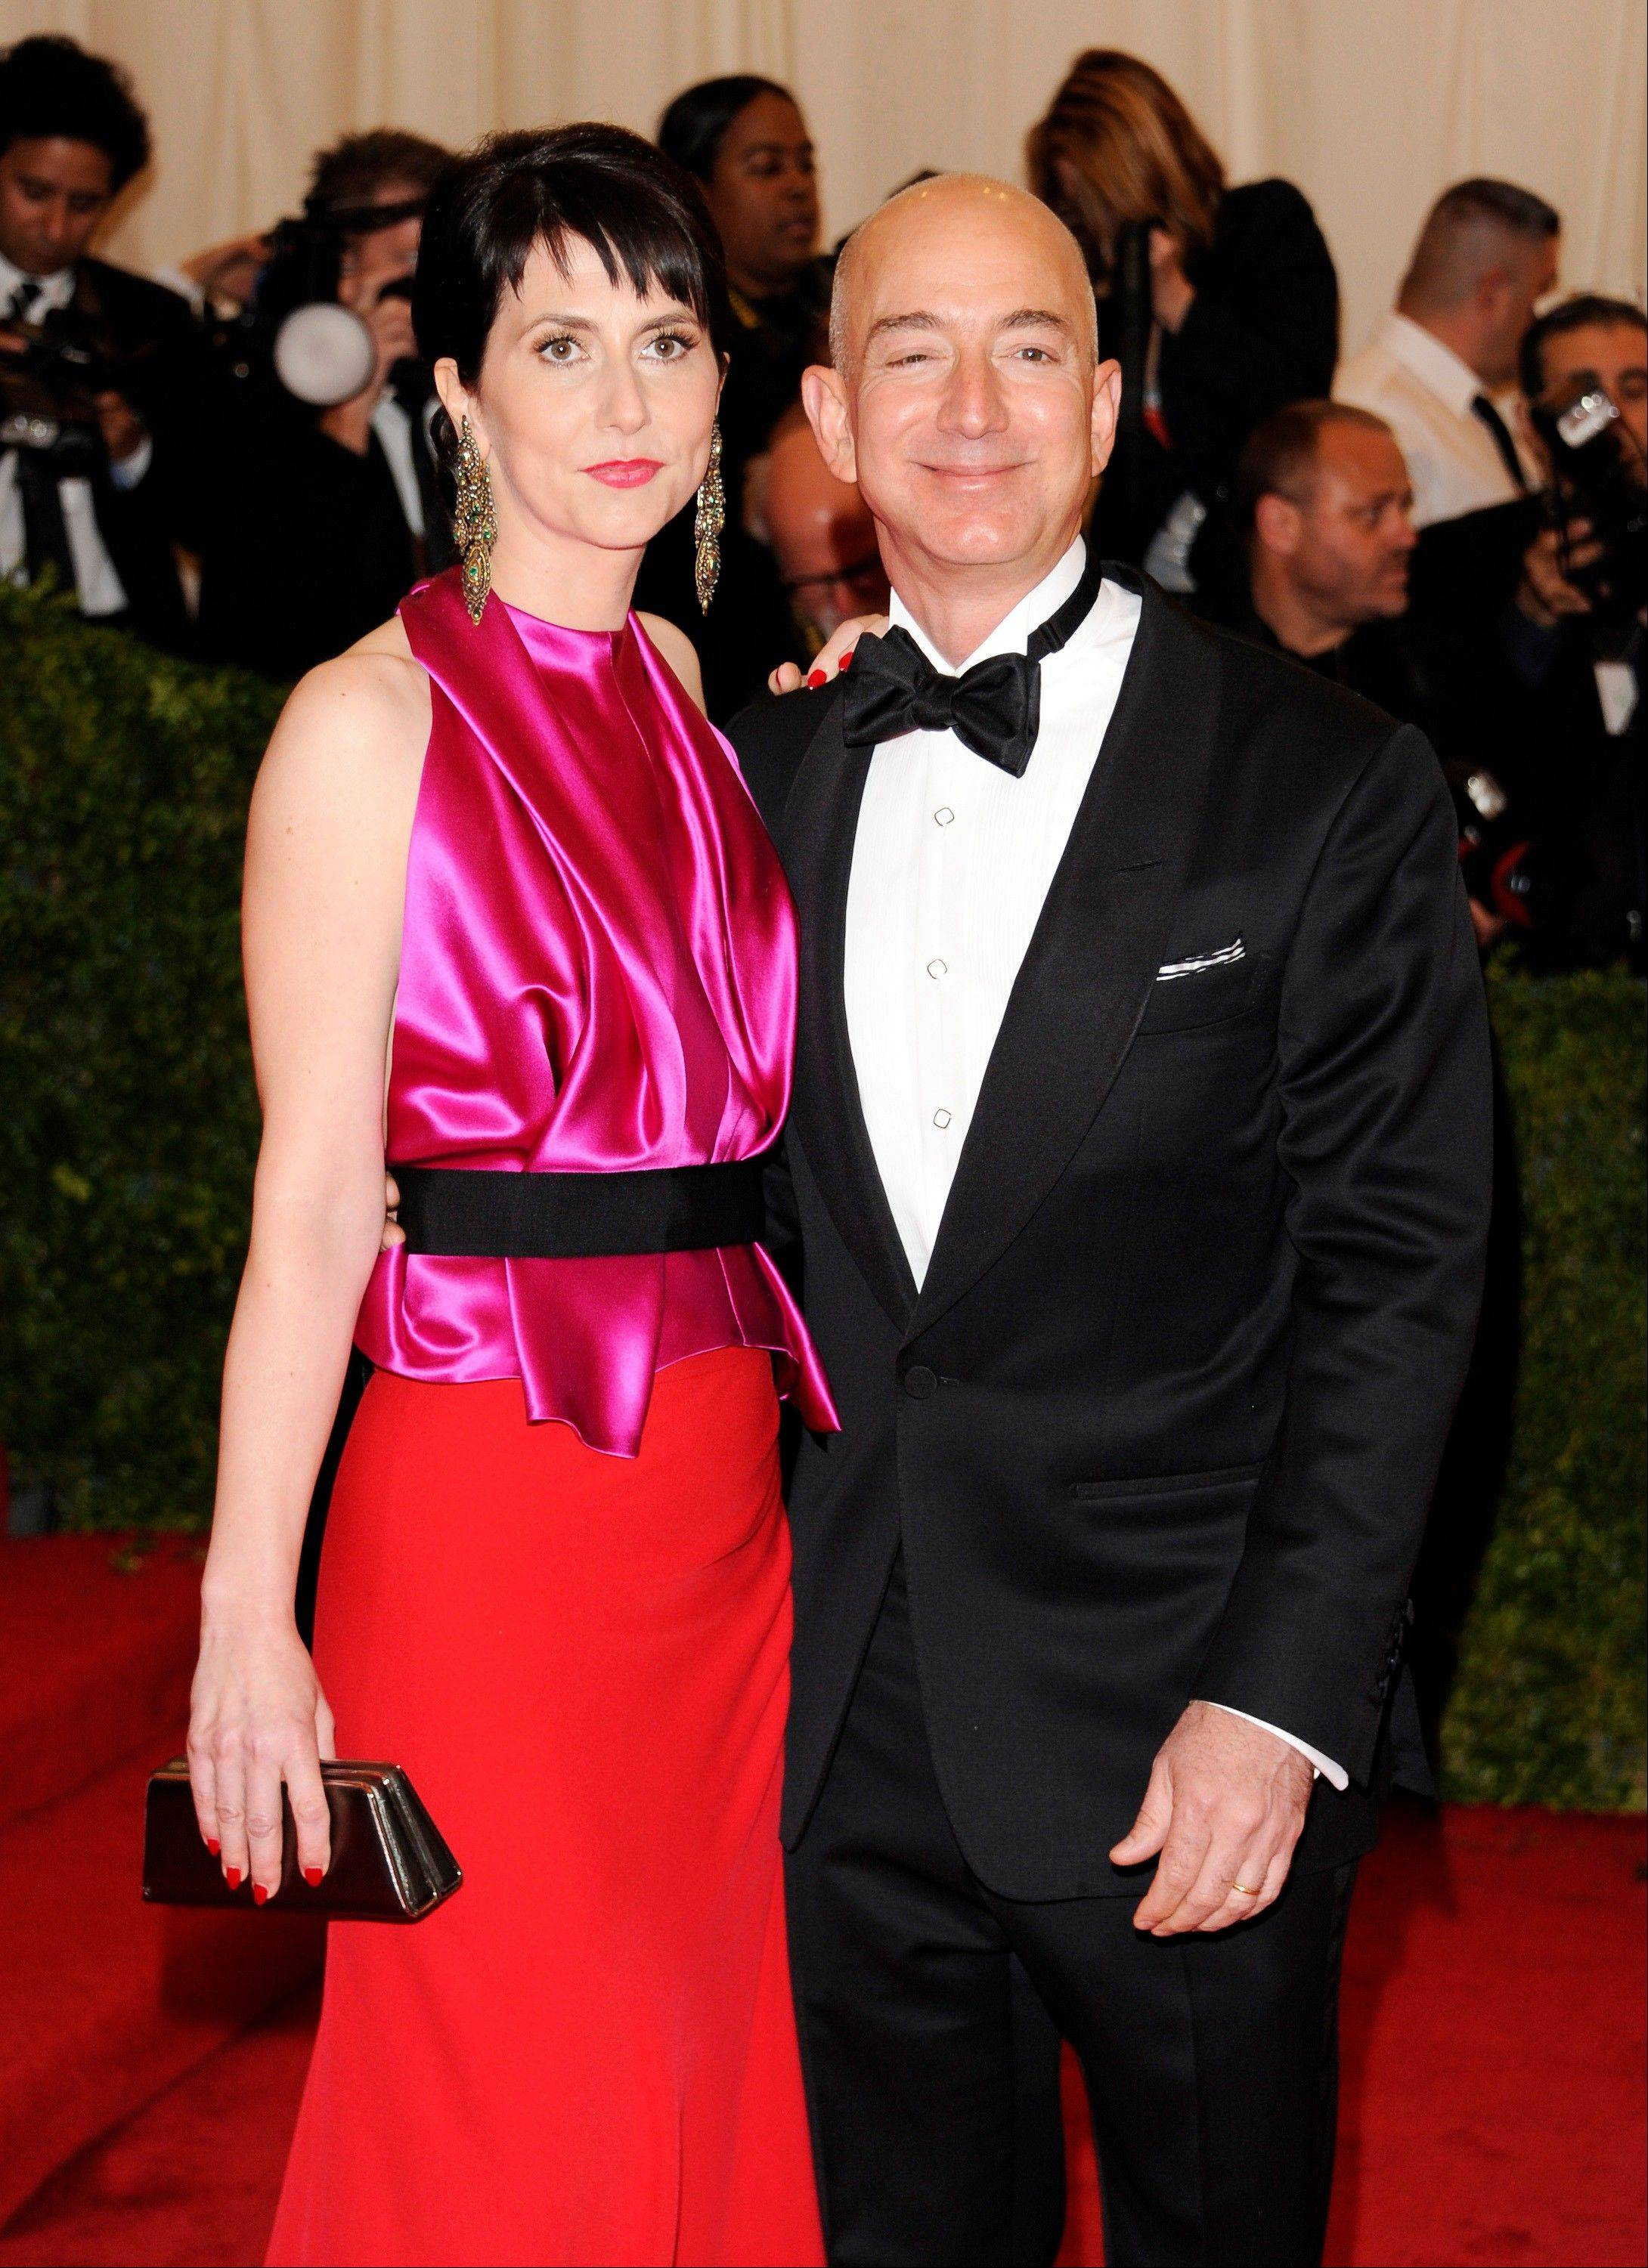 Associated Press/May 7, 2012 Amazon founder, president and CEO Jeff Bezos and wife Mackenzie Bezos arrive at the Metropolitan Museum of Art Costume Institute gala benefit.